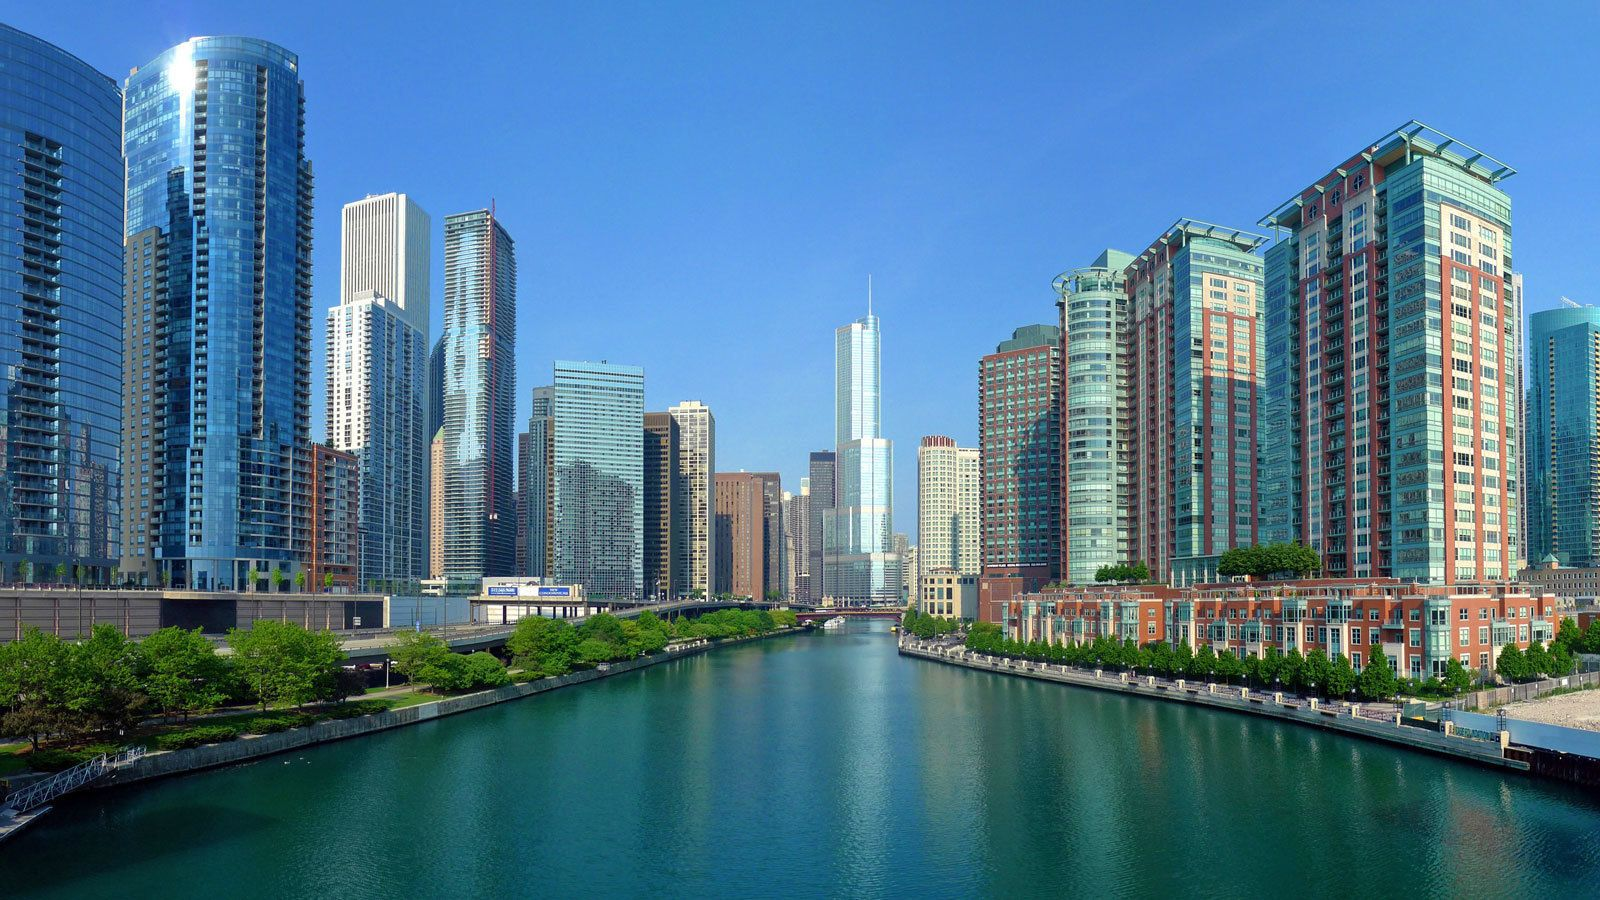 traveling between the water channels in Chicago